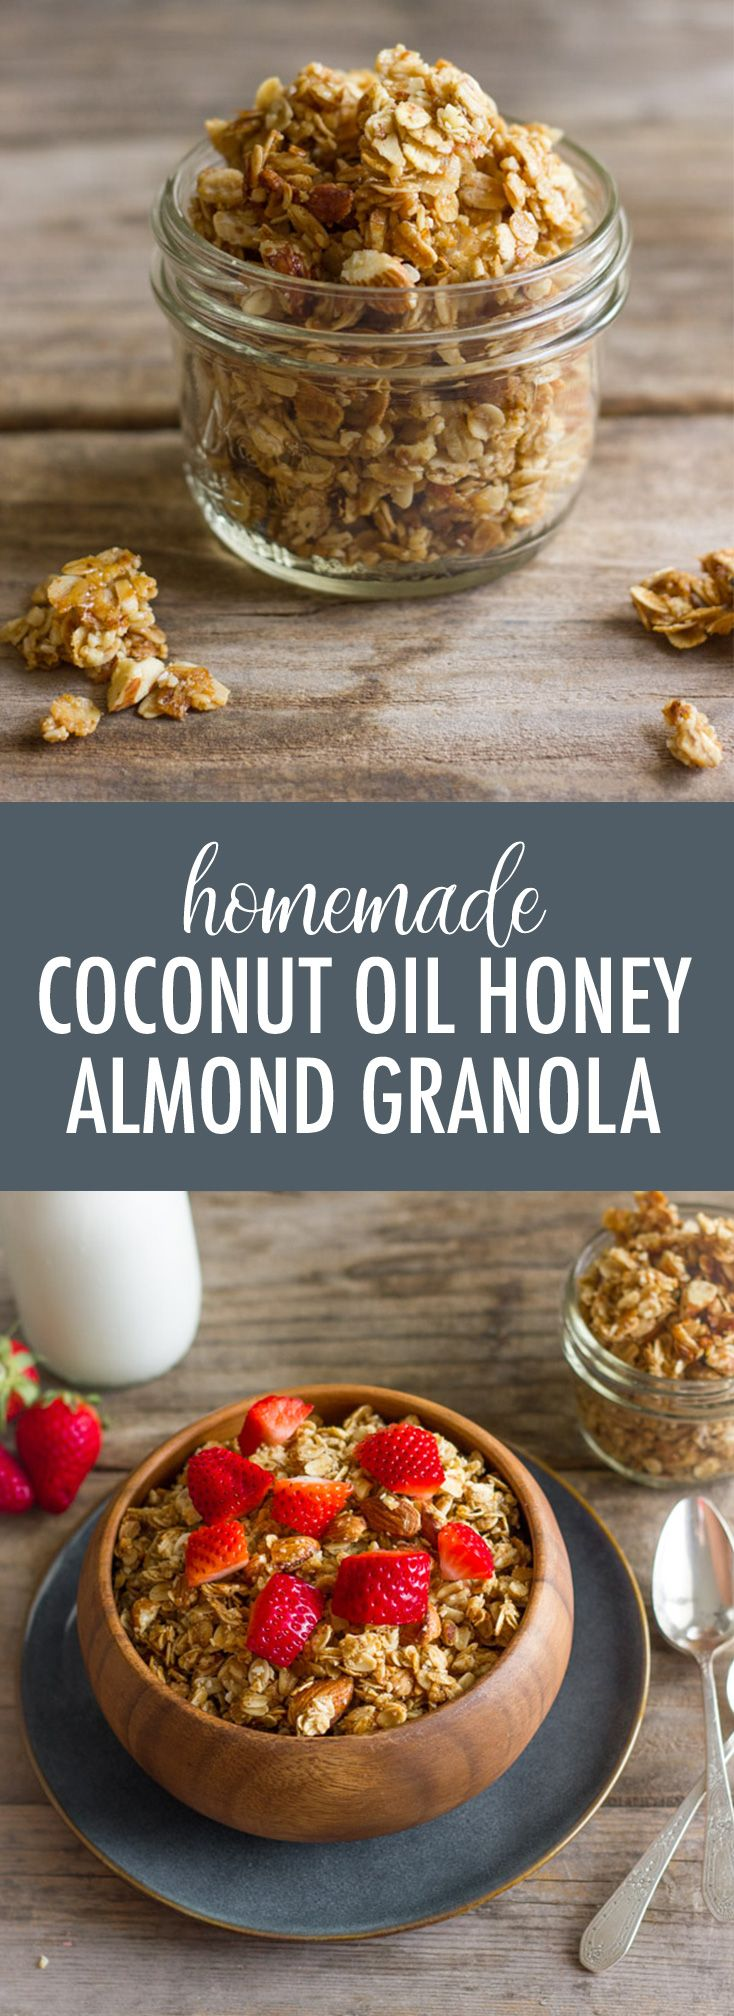 Wonderfully sticky and clumpy, this Homemade Coconut Oil